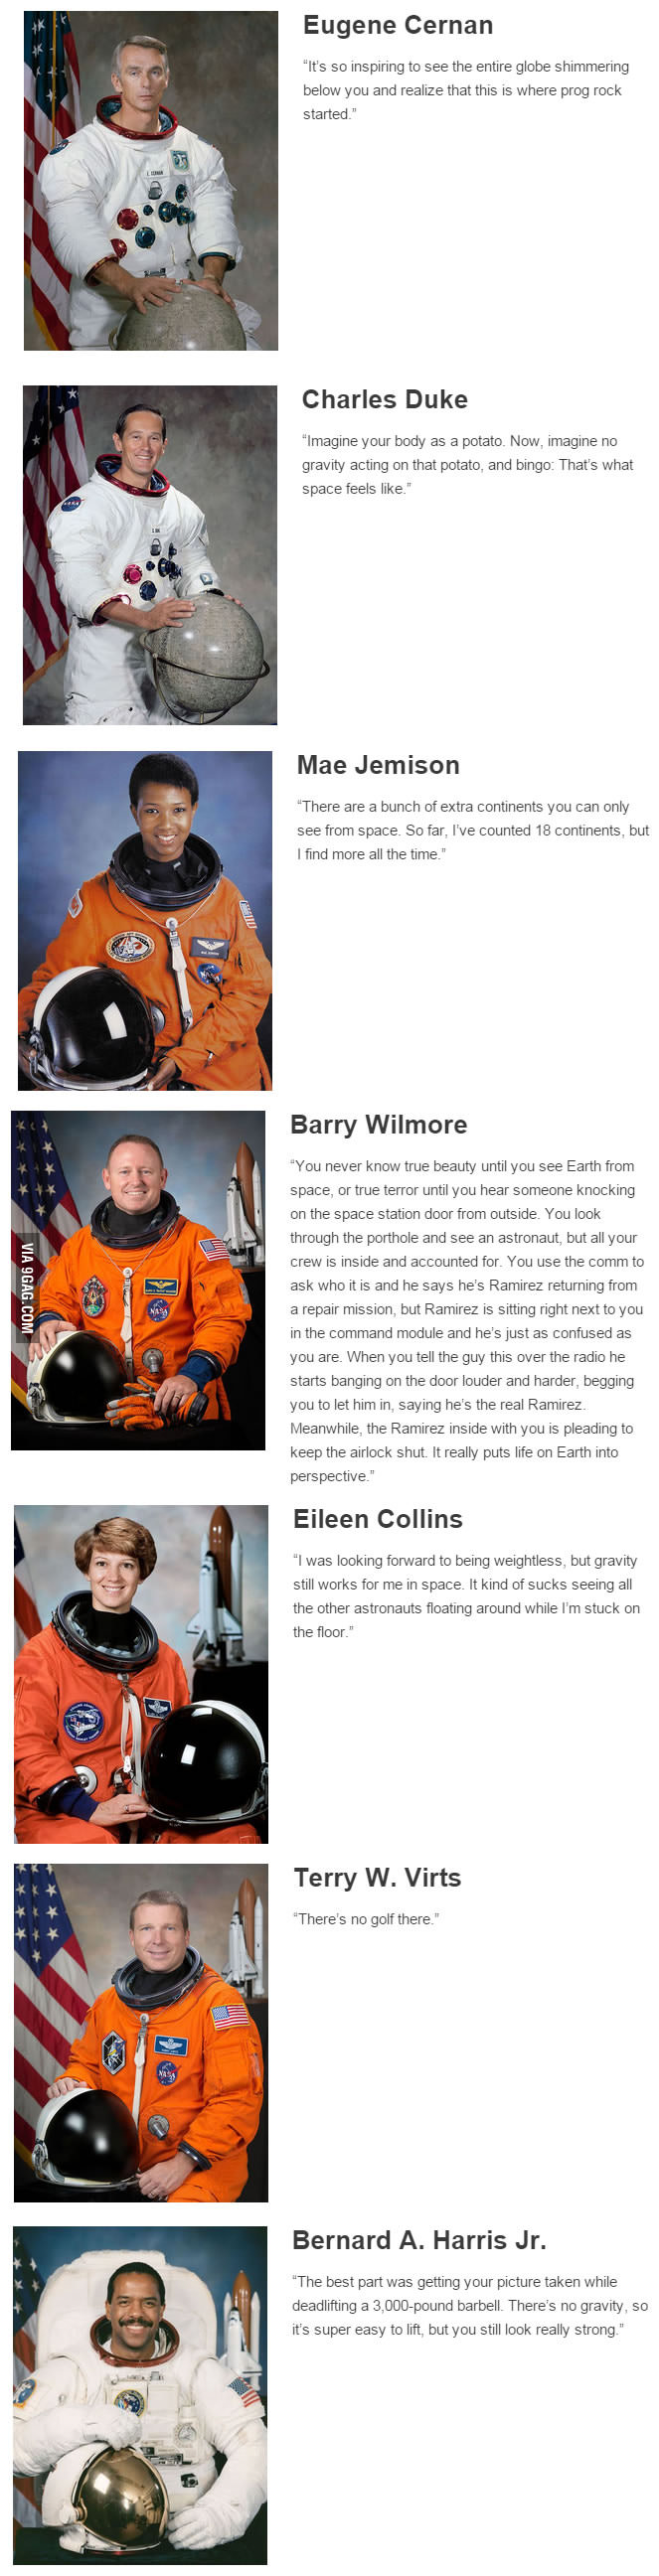 seven-astronauts-describe-what-it-feels-like-to-be-in-space